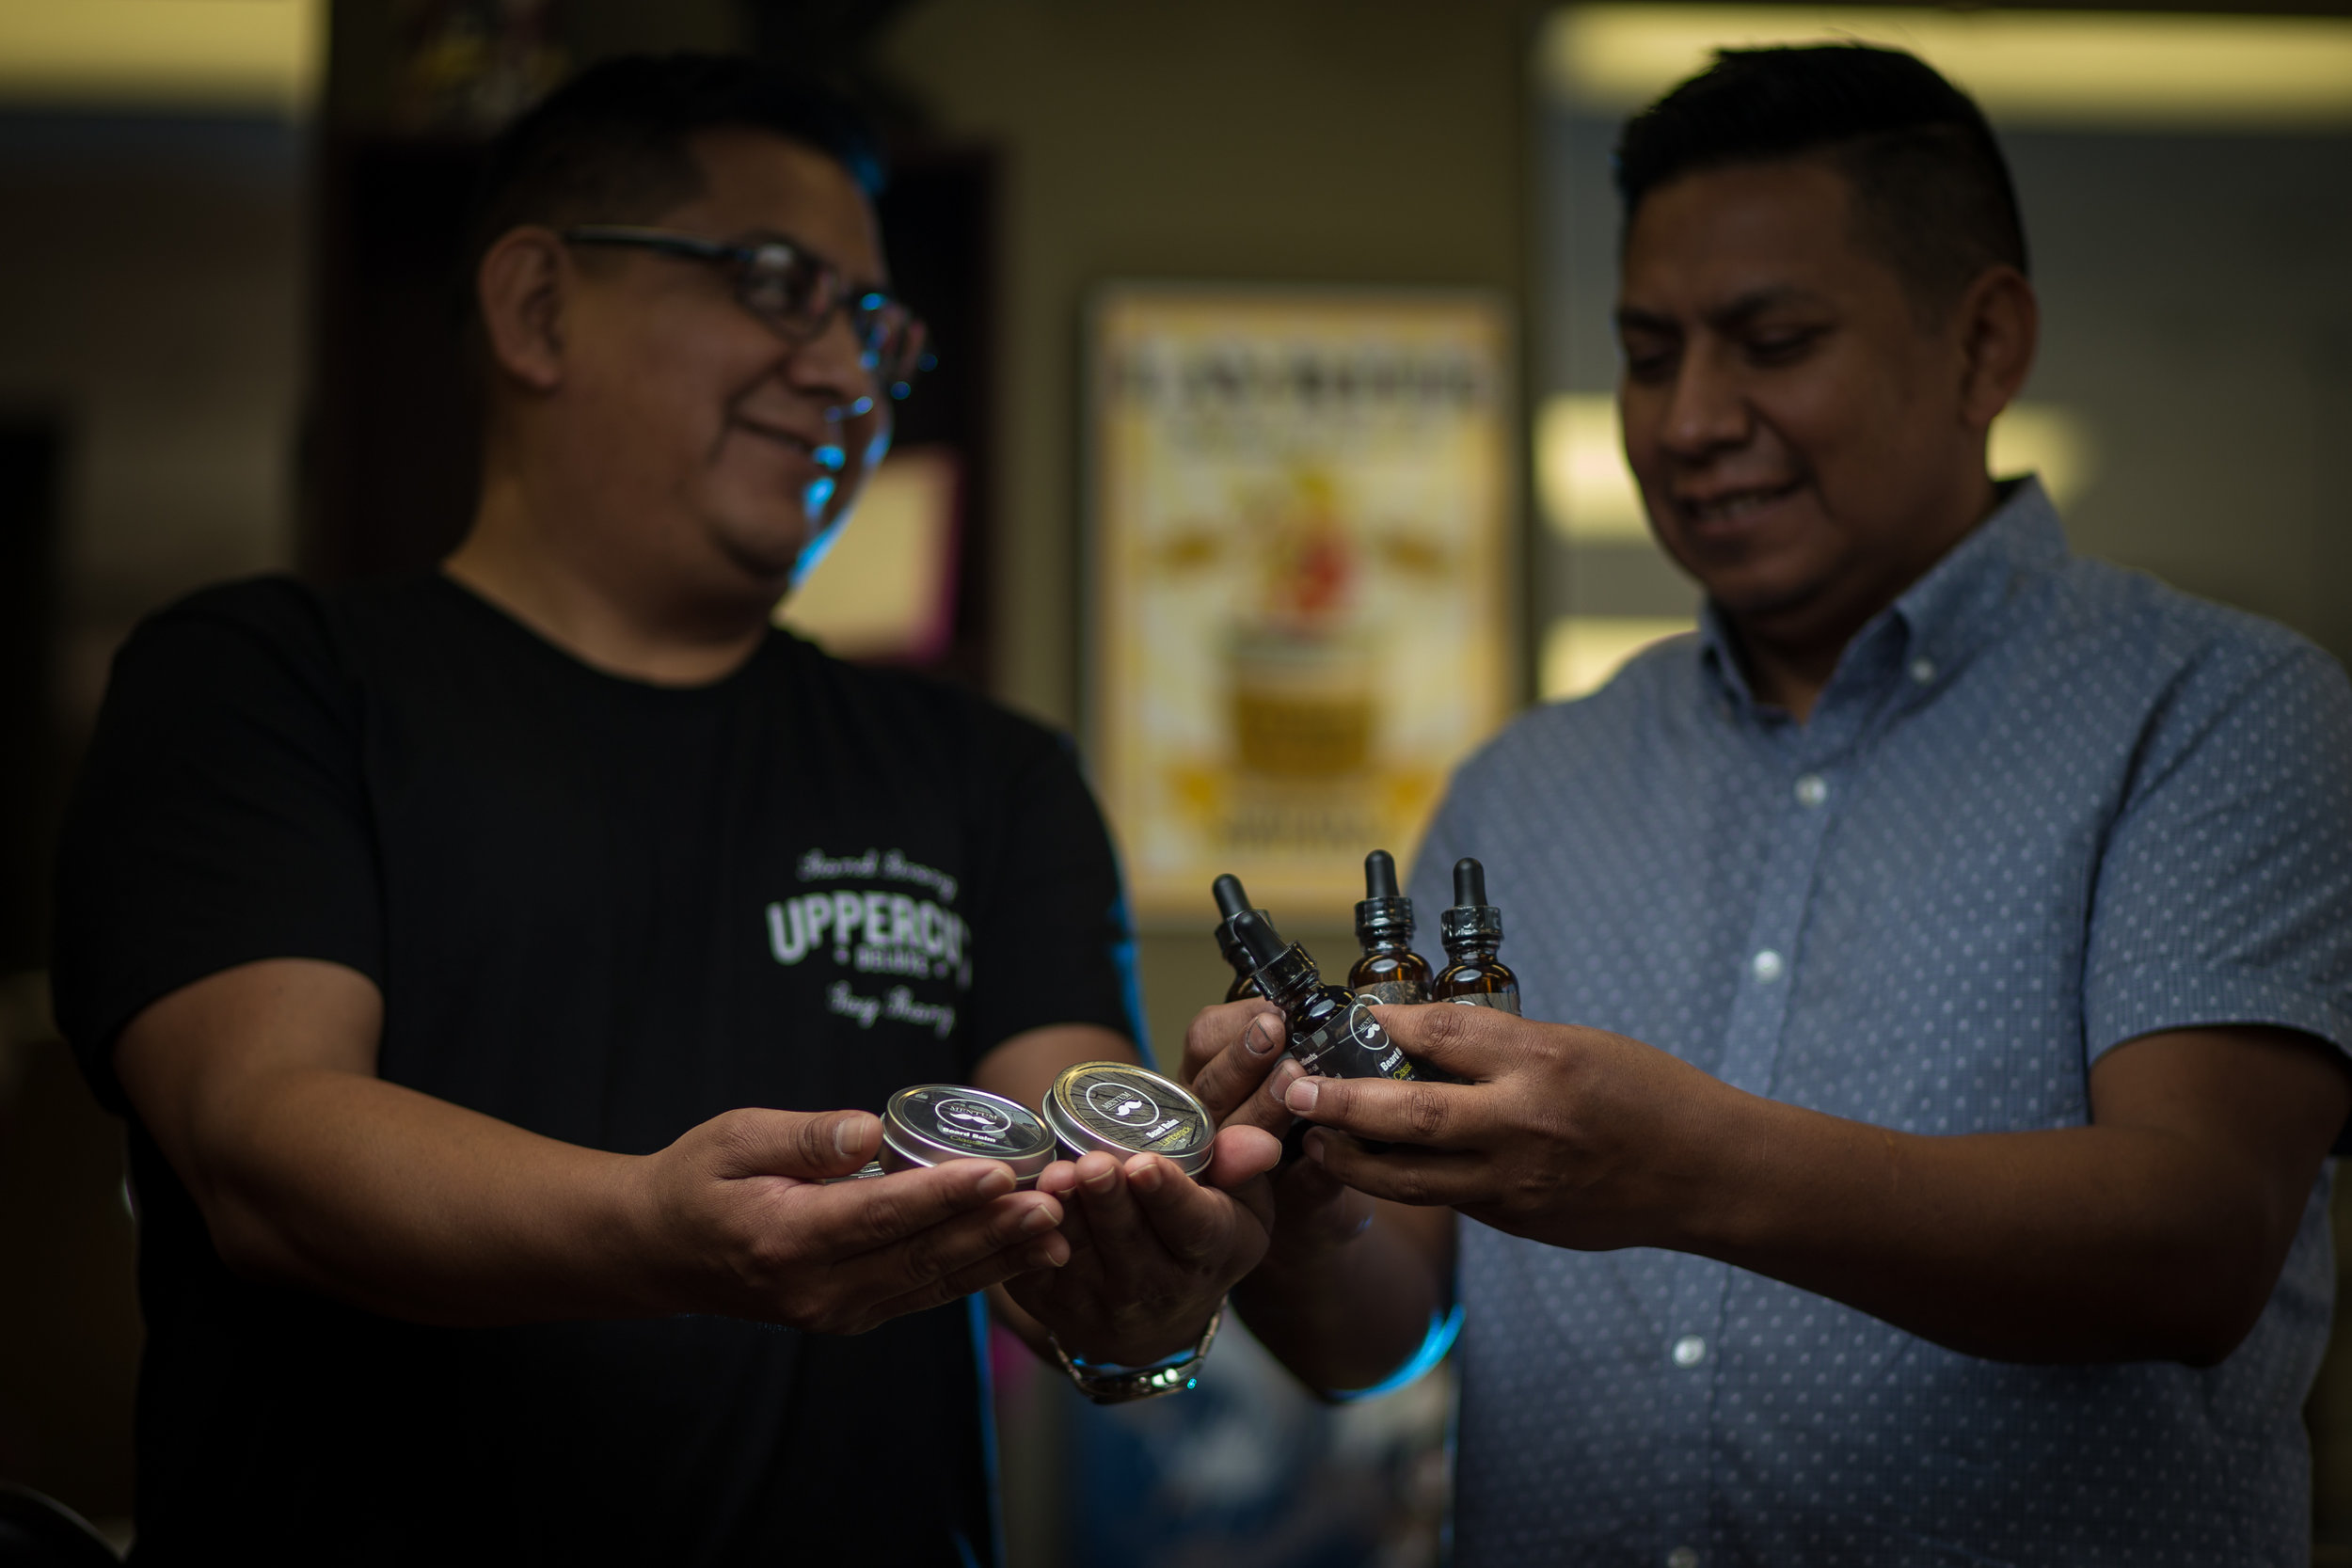 jo and carlos holding bals oils see oils.jpg